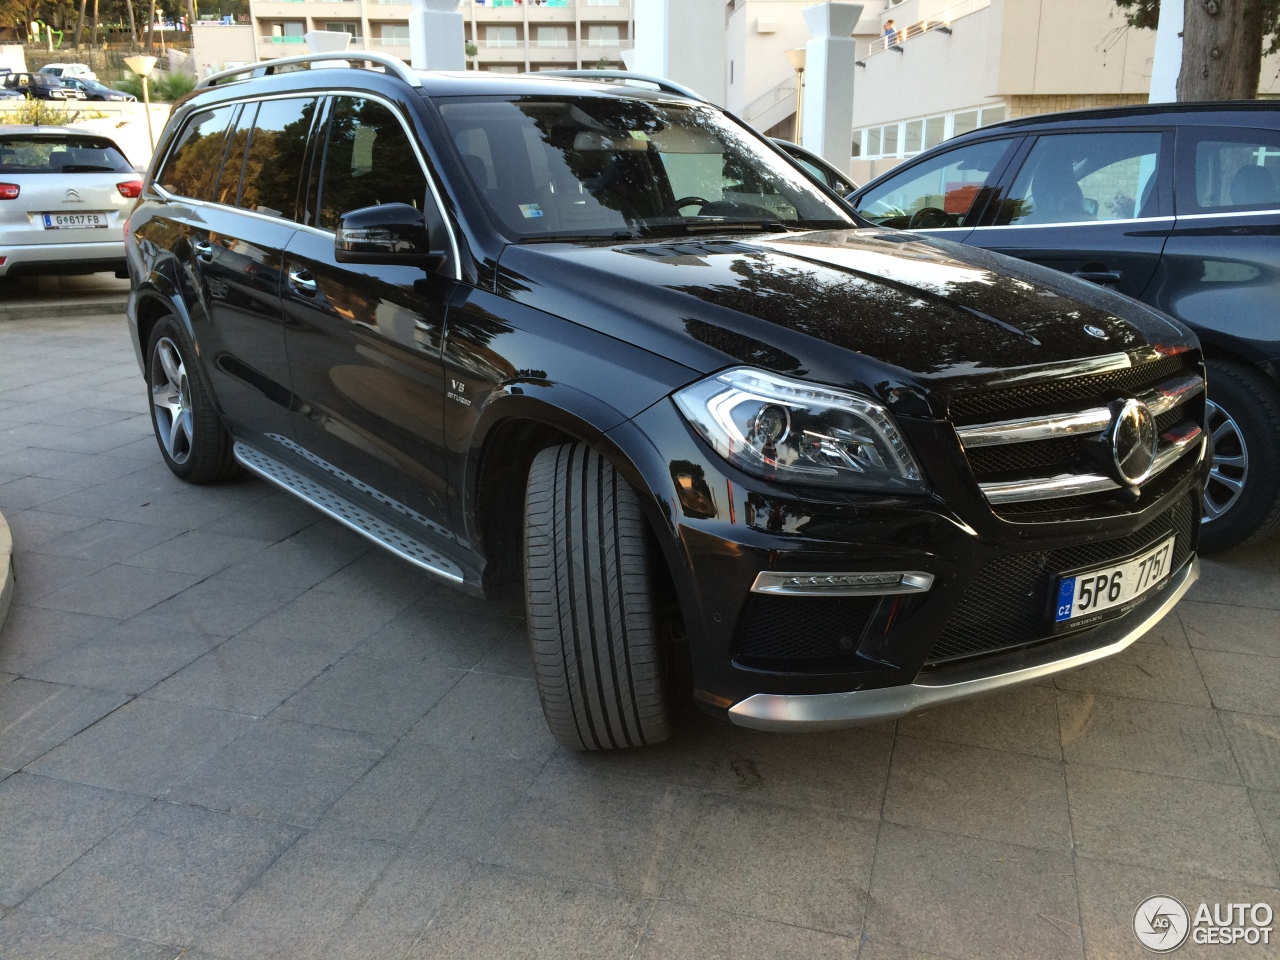 Mercedes benz gl 63 amg x166 23 czerwiec 2014 autogespot for Mercedes benz gls 63 amg